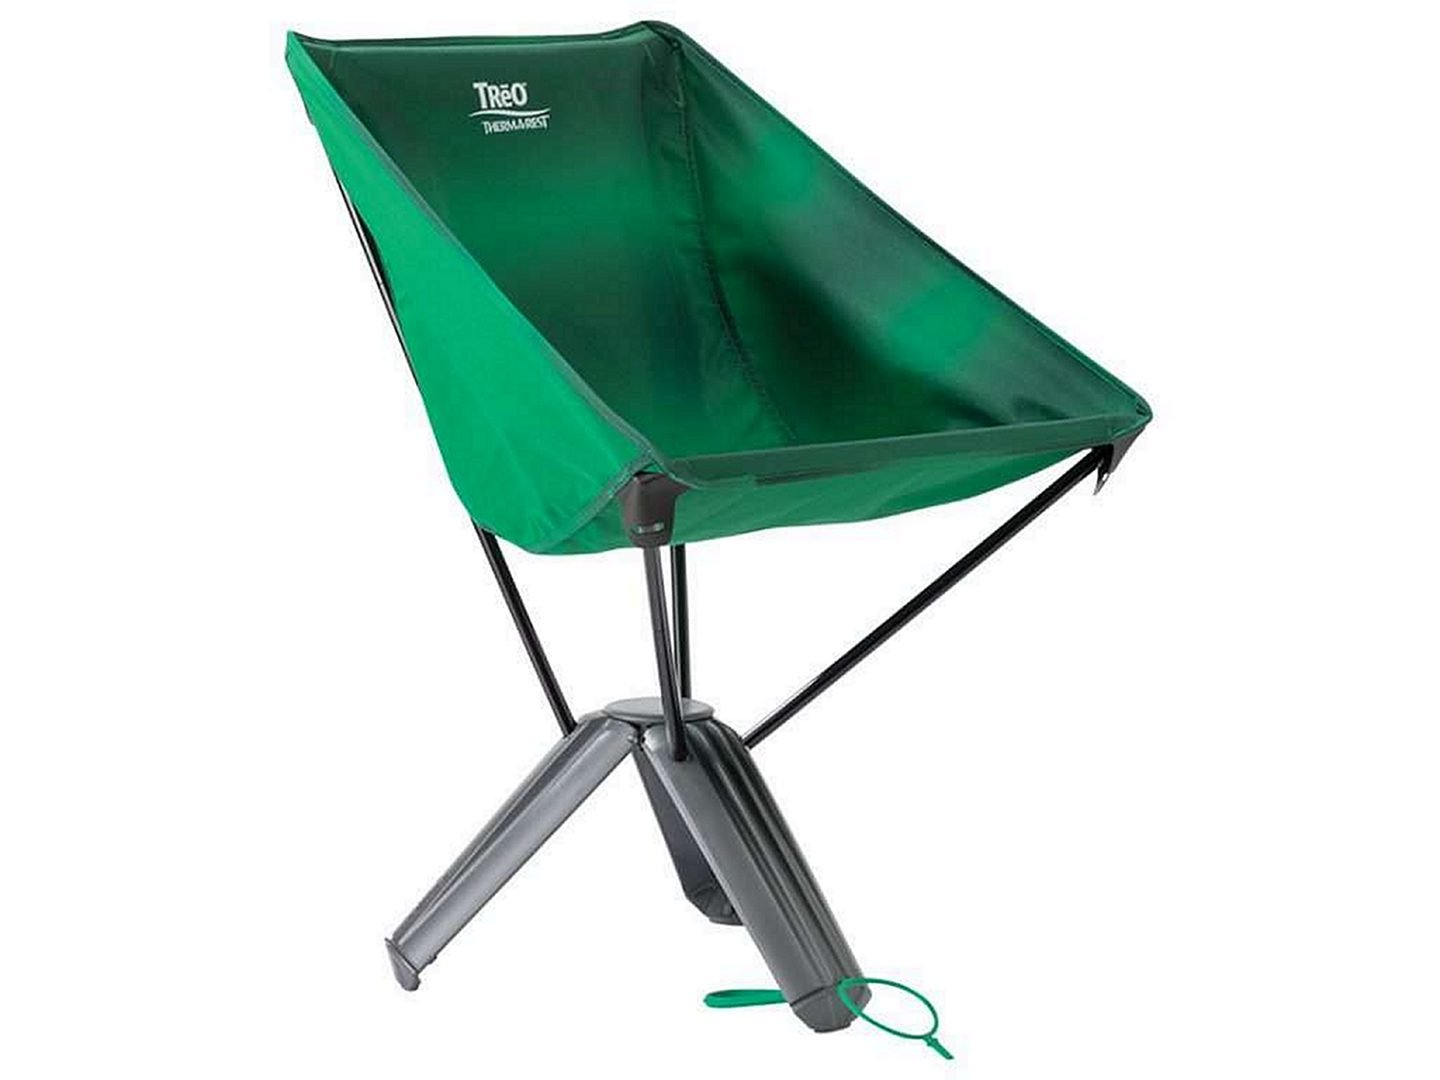 Therm-a-Rest TREO Chair